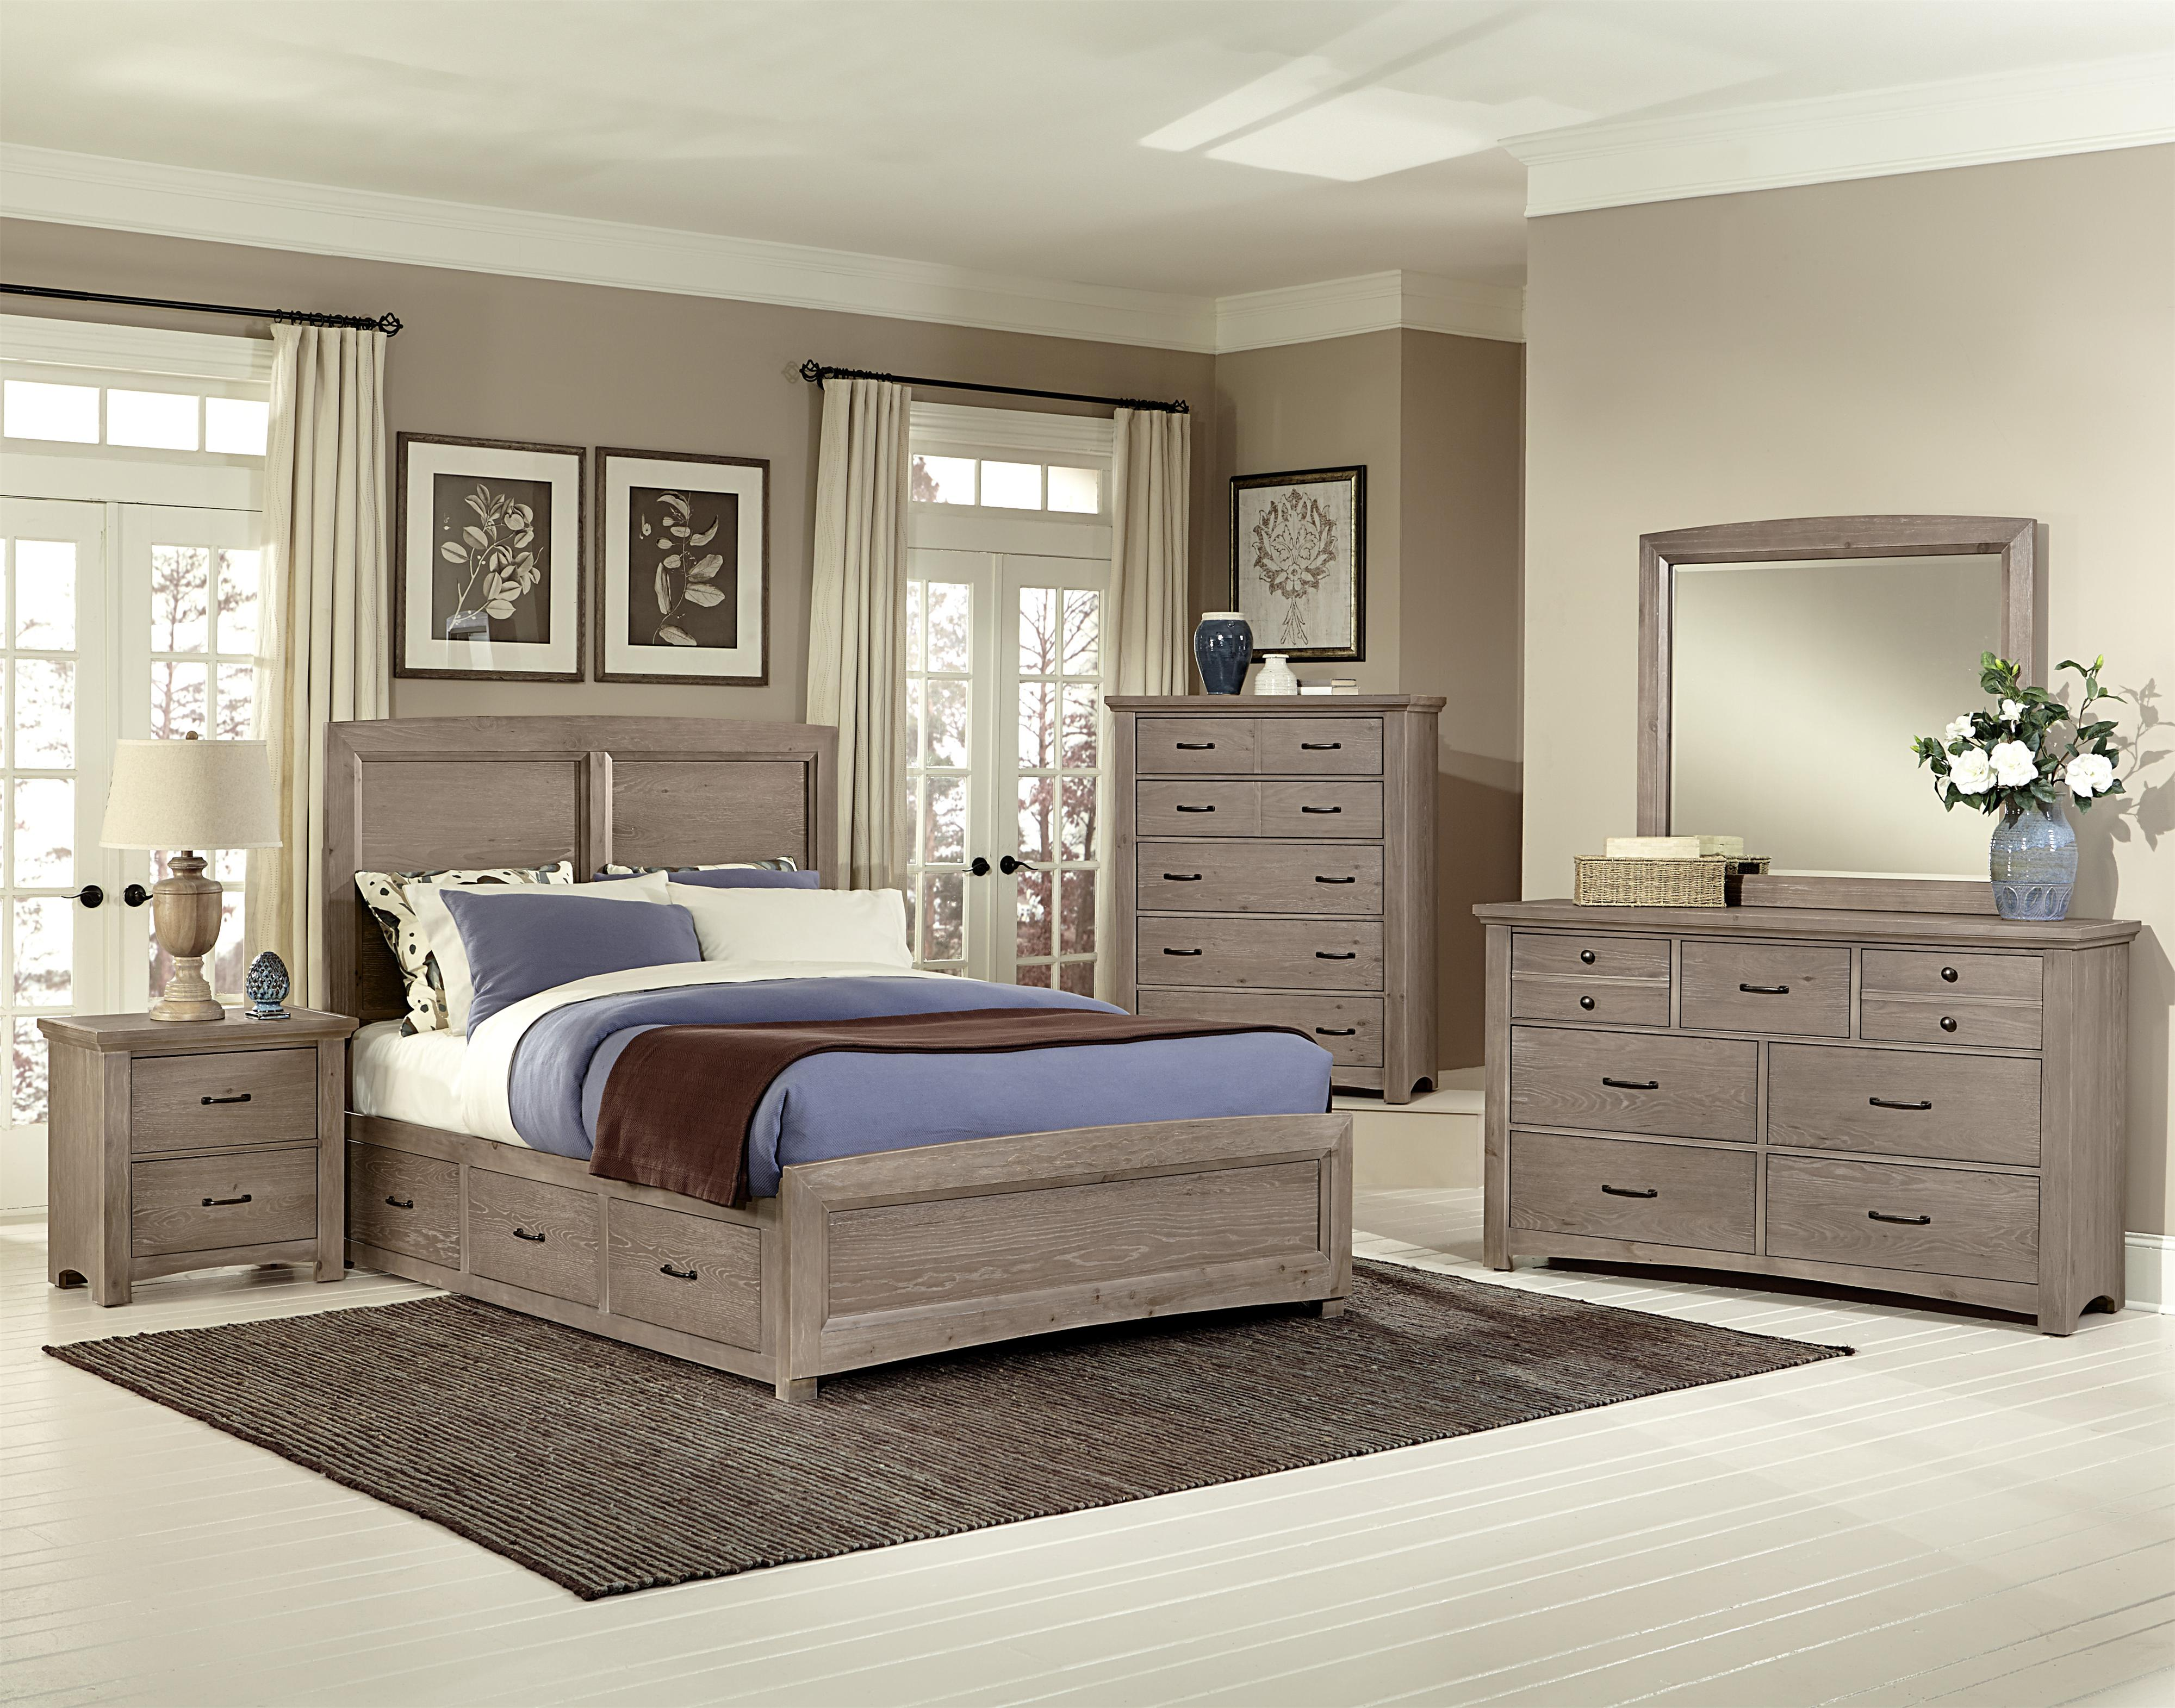 Vaughan Bassett Transitions King Bedroom Group Belfort Furniture Bedroom Groups